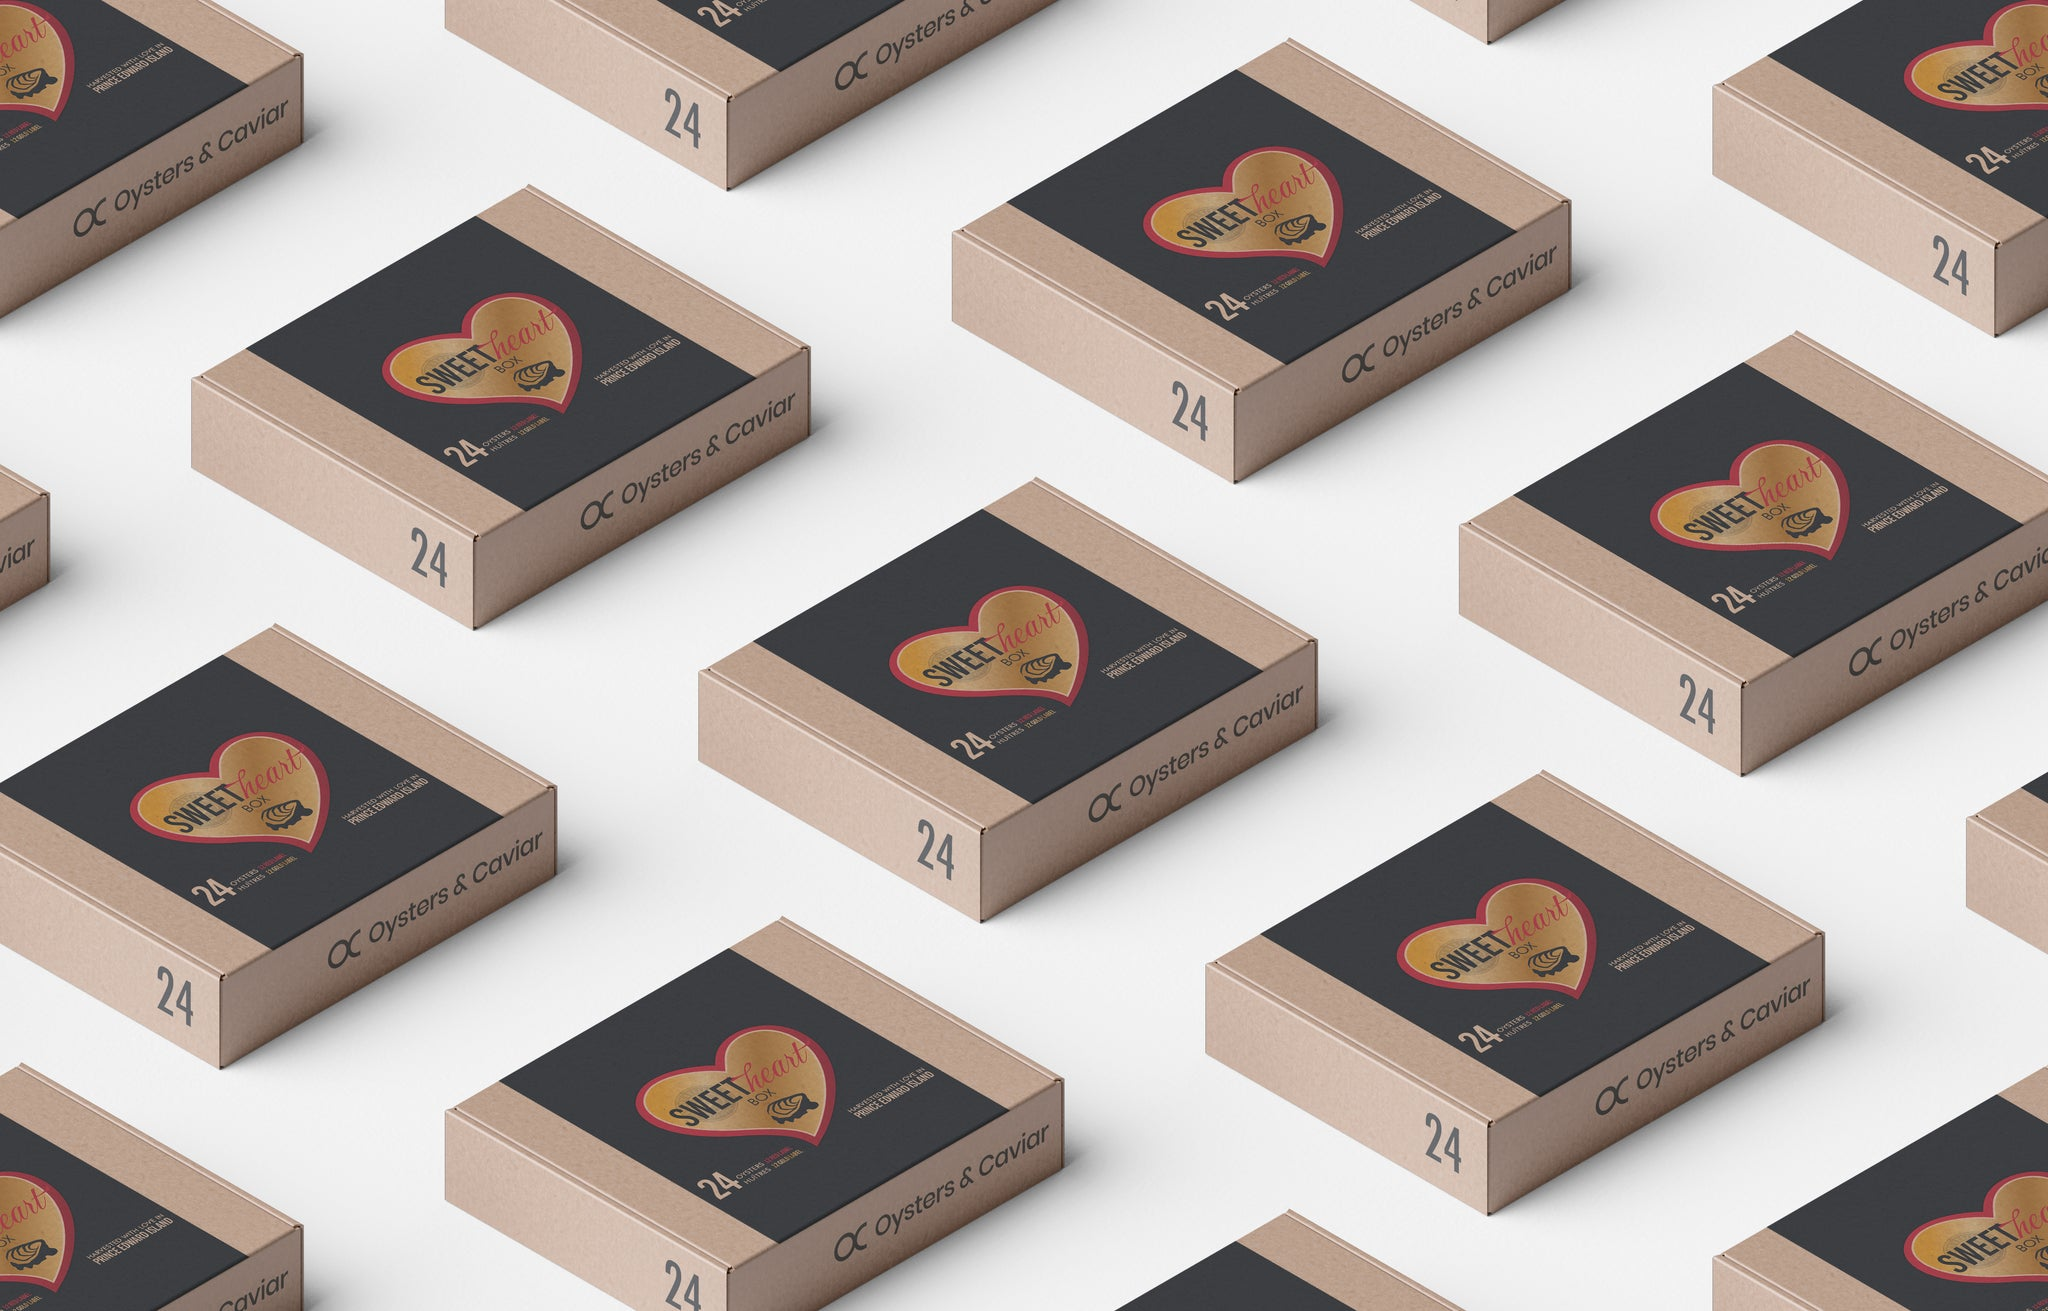 The Sweetheart box : A limited-edition for Valentine's Day